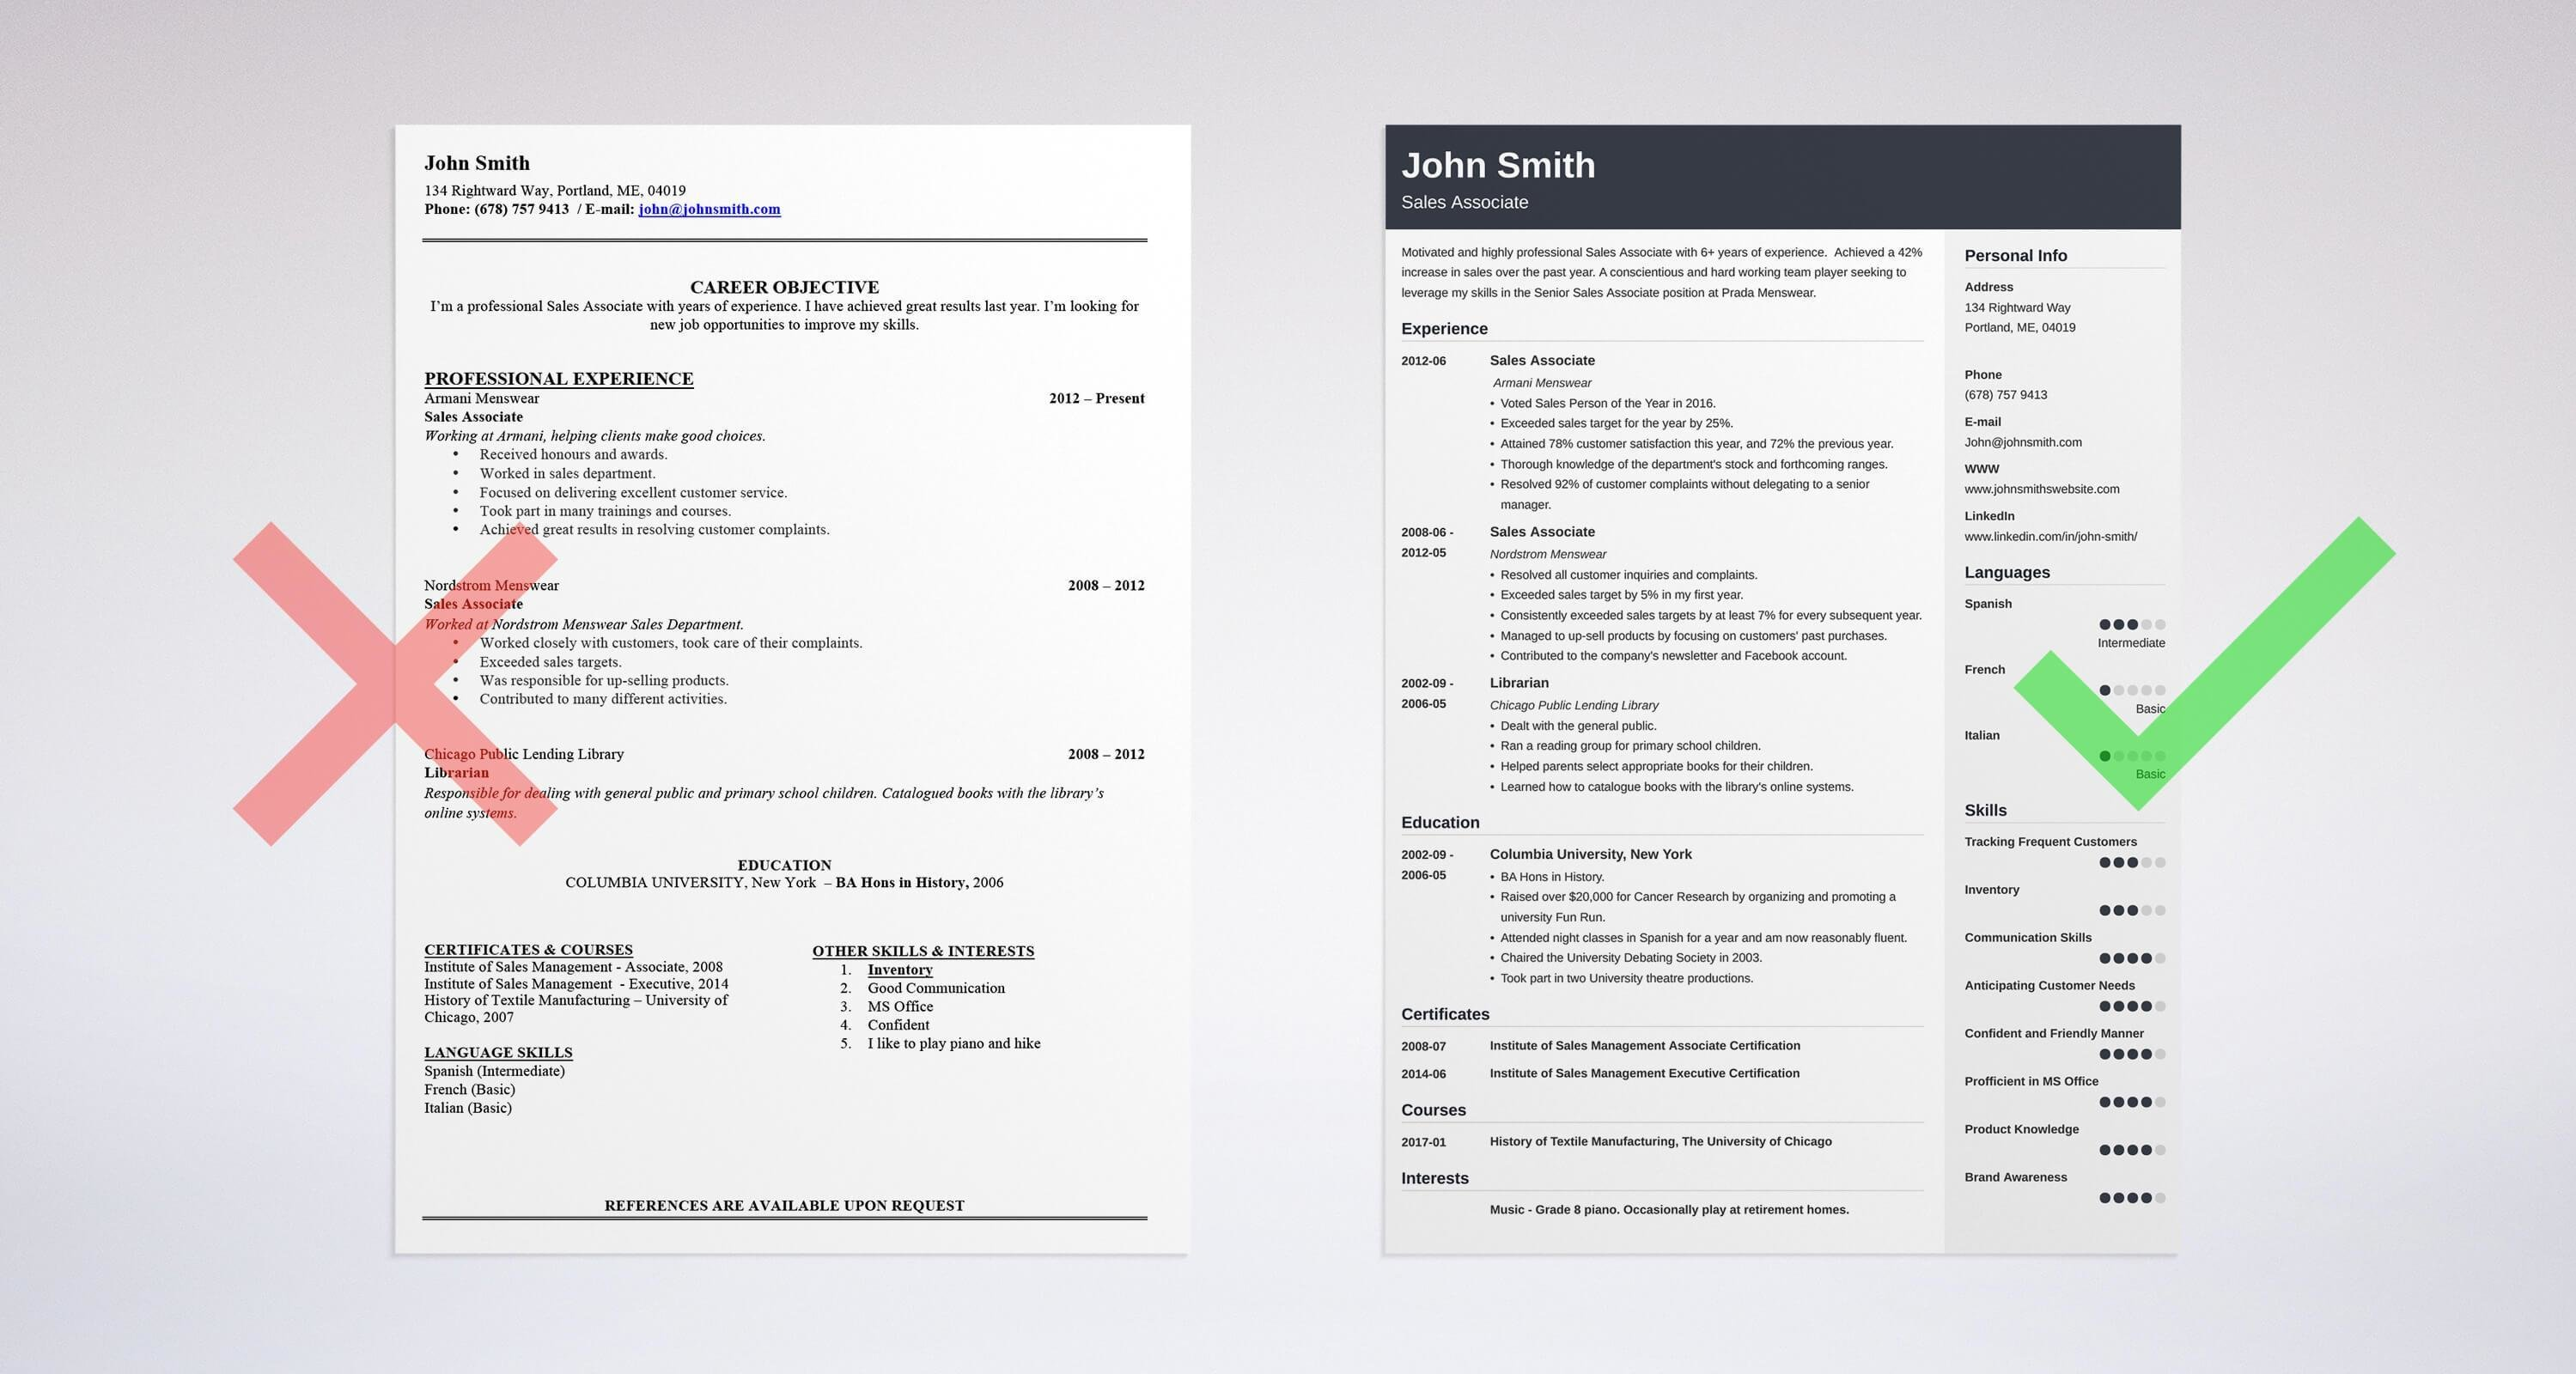 Wonderful Professional Resume Summary: 30 Examples Of Statements [+How To]